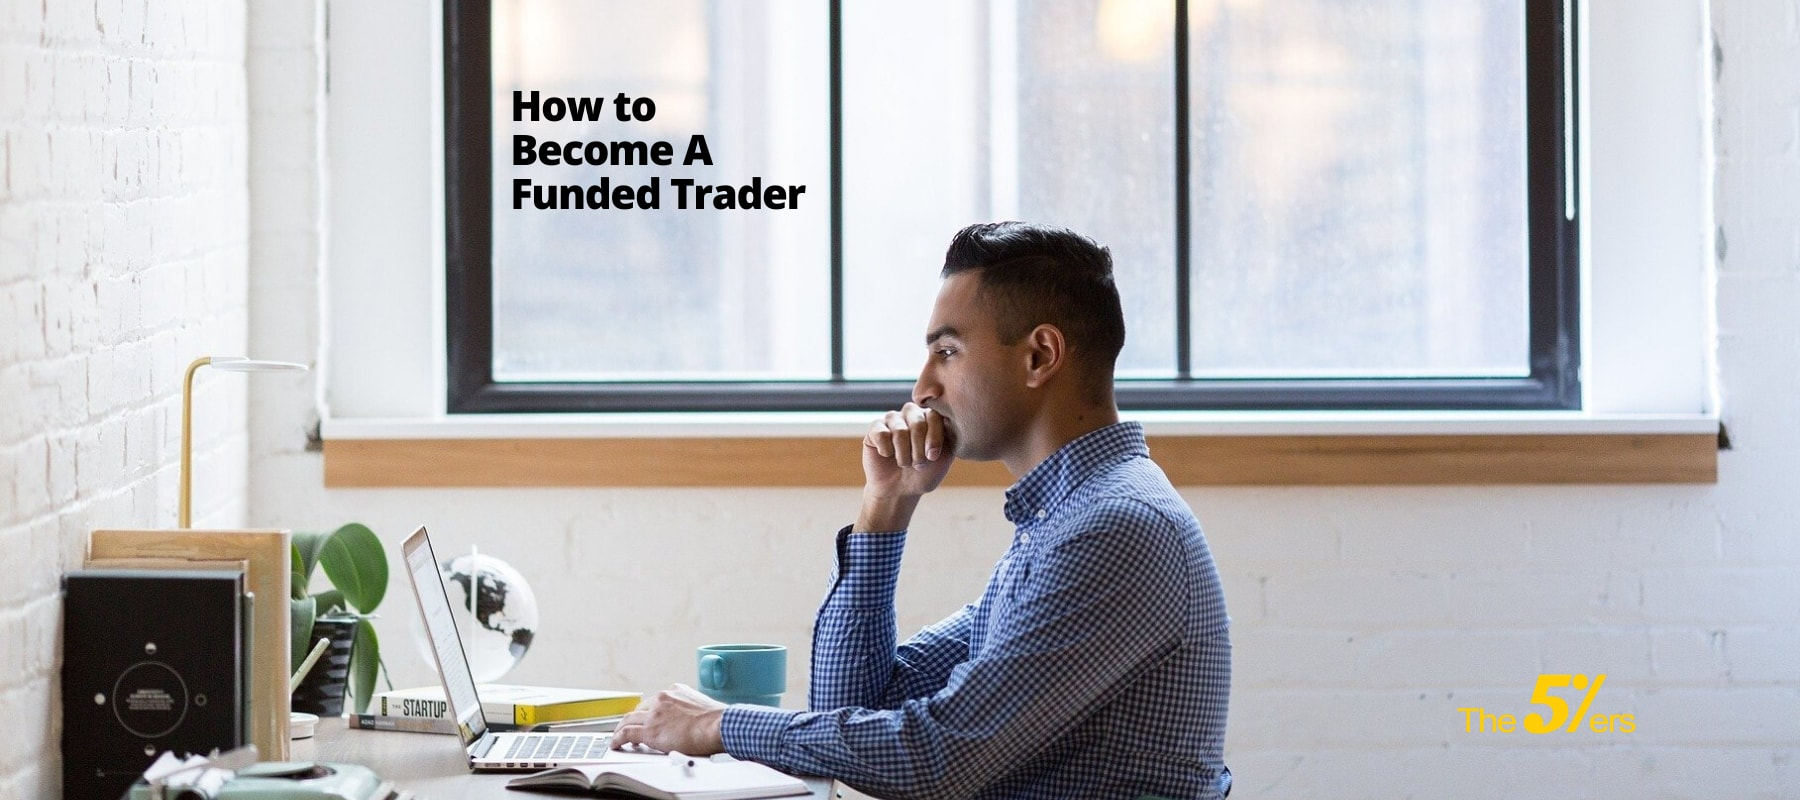 Funded Trading – How to Become A Funded Trader